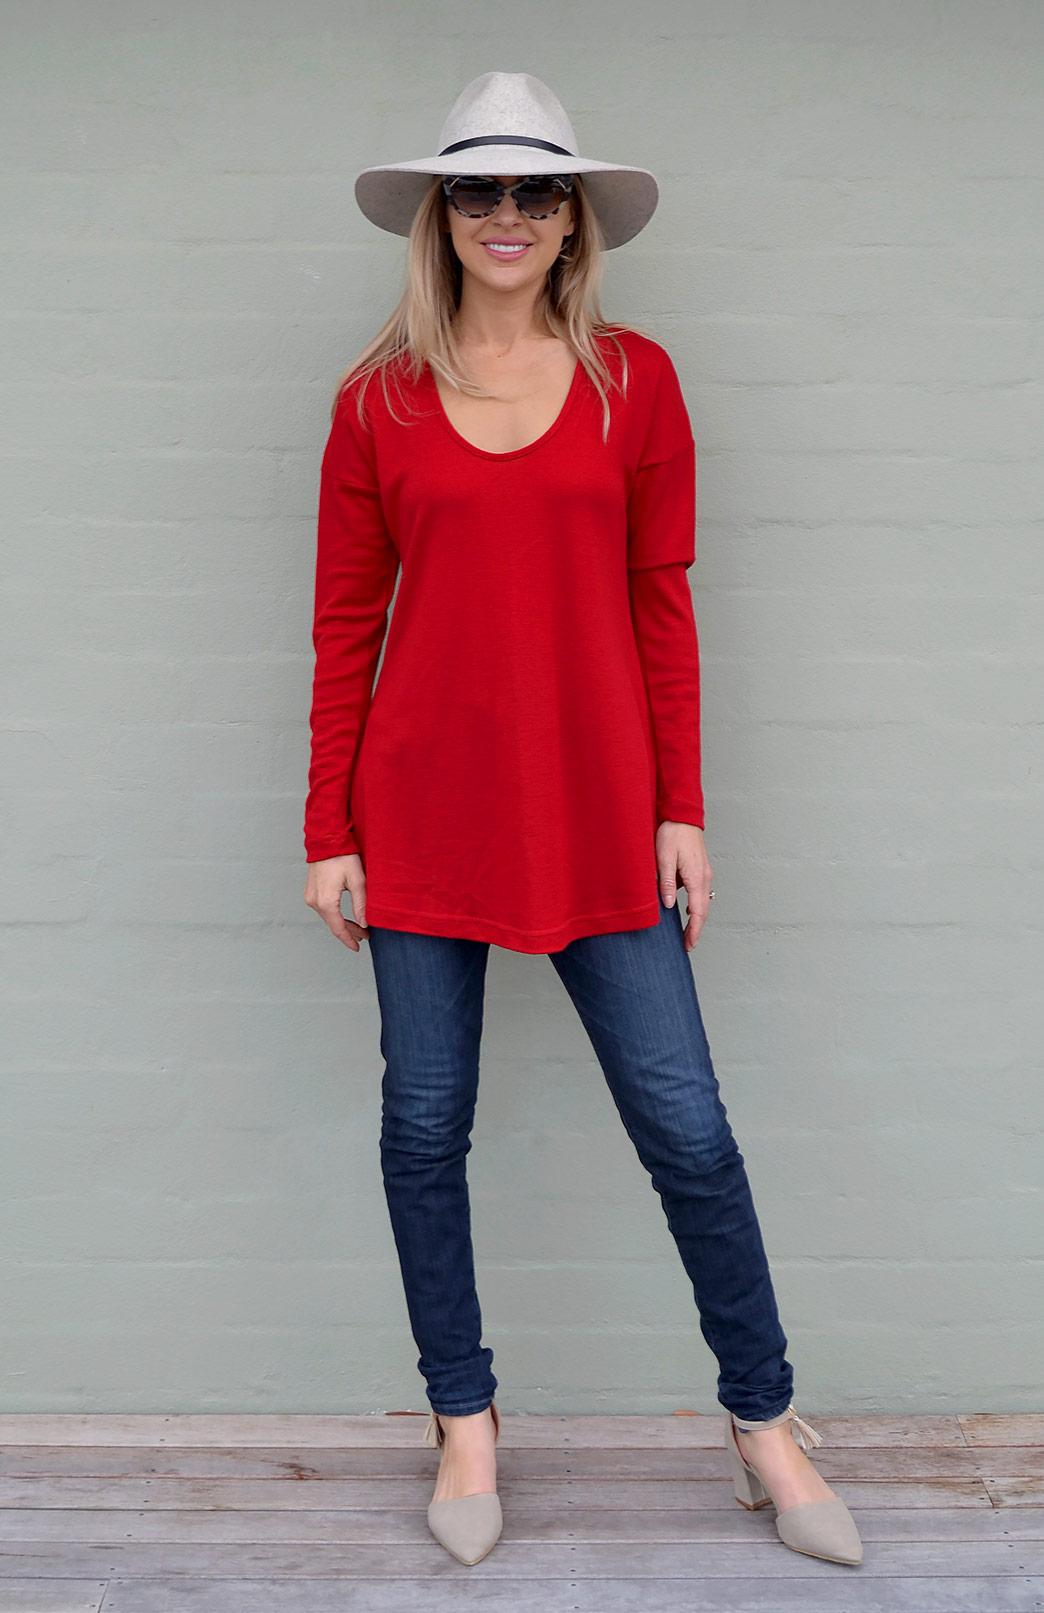 Wave Top - Women's Relaxed Fit Red Wool Top with dropped shoulders - Smitten Merino Tasmania Australia